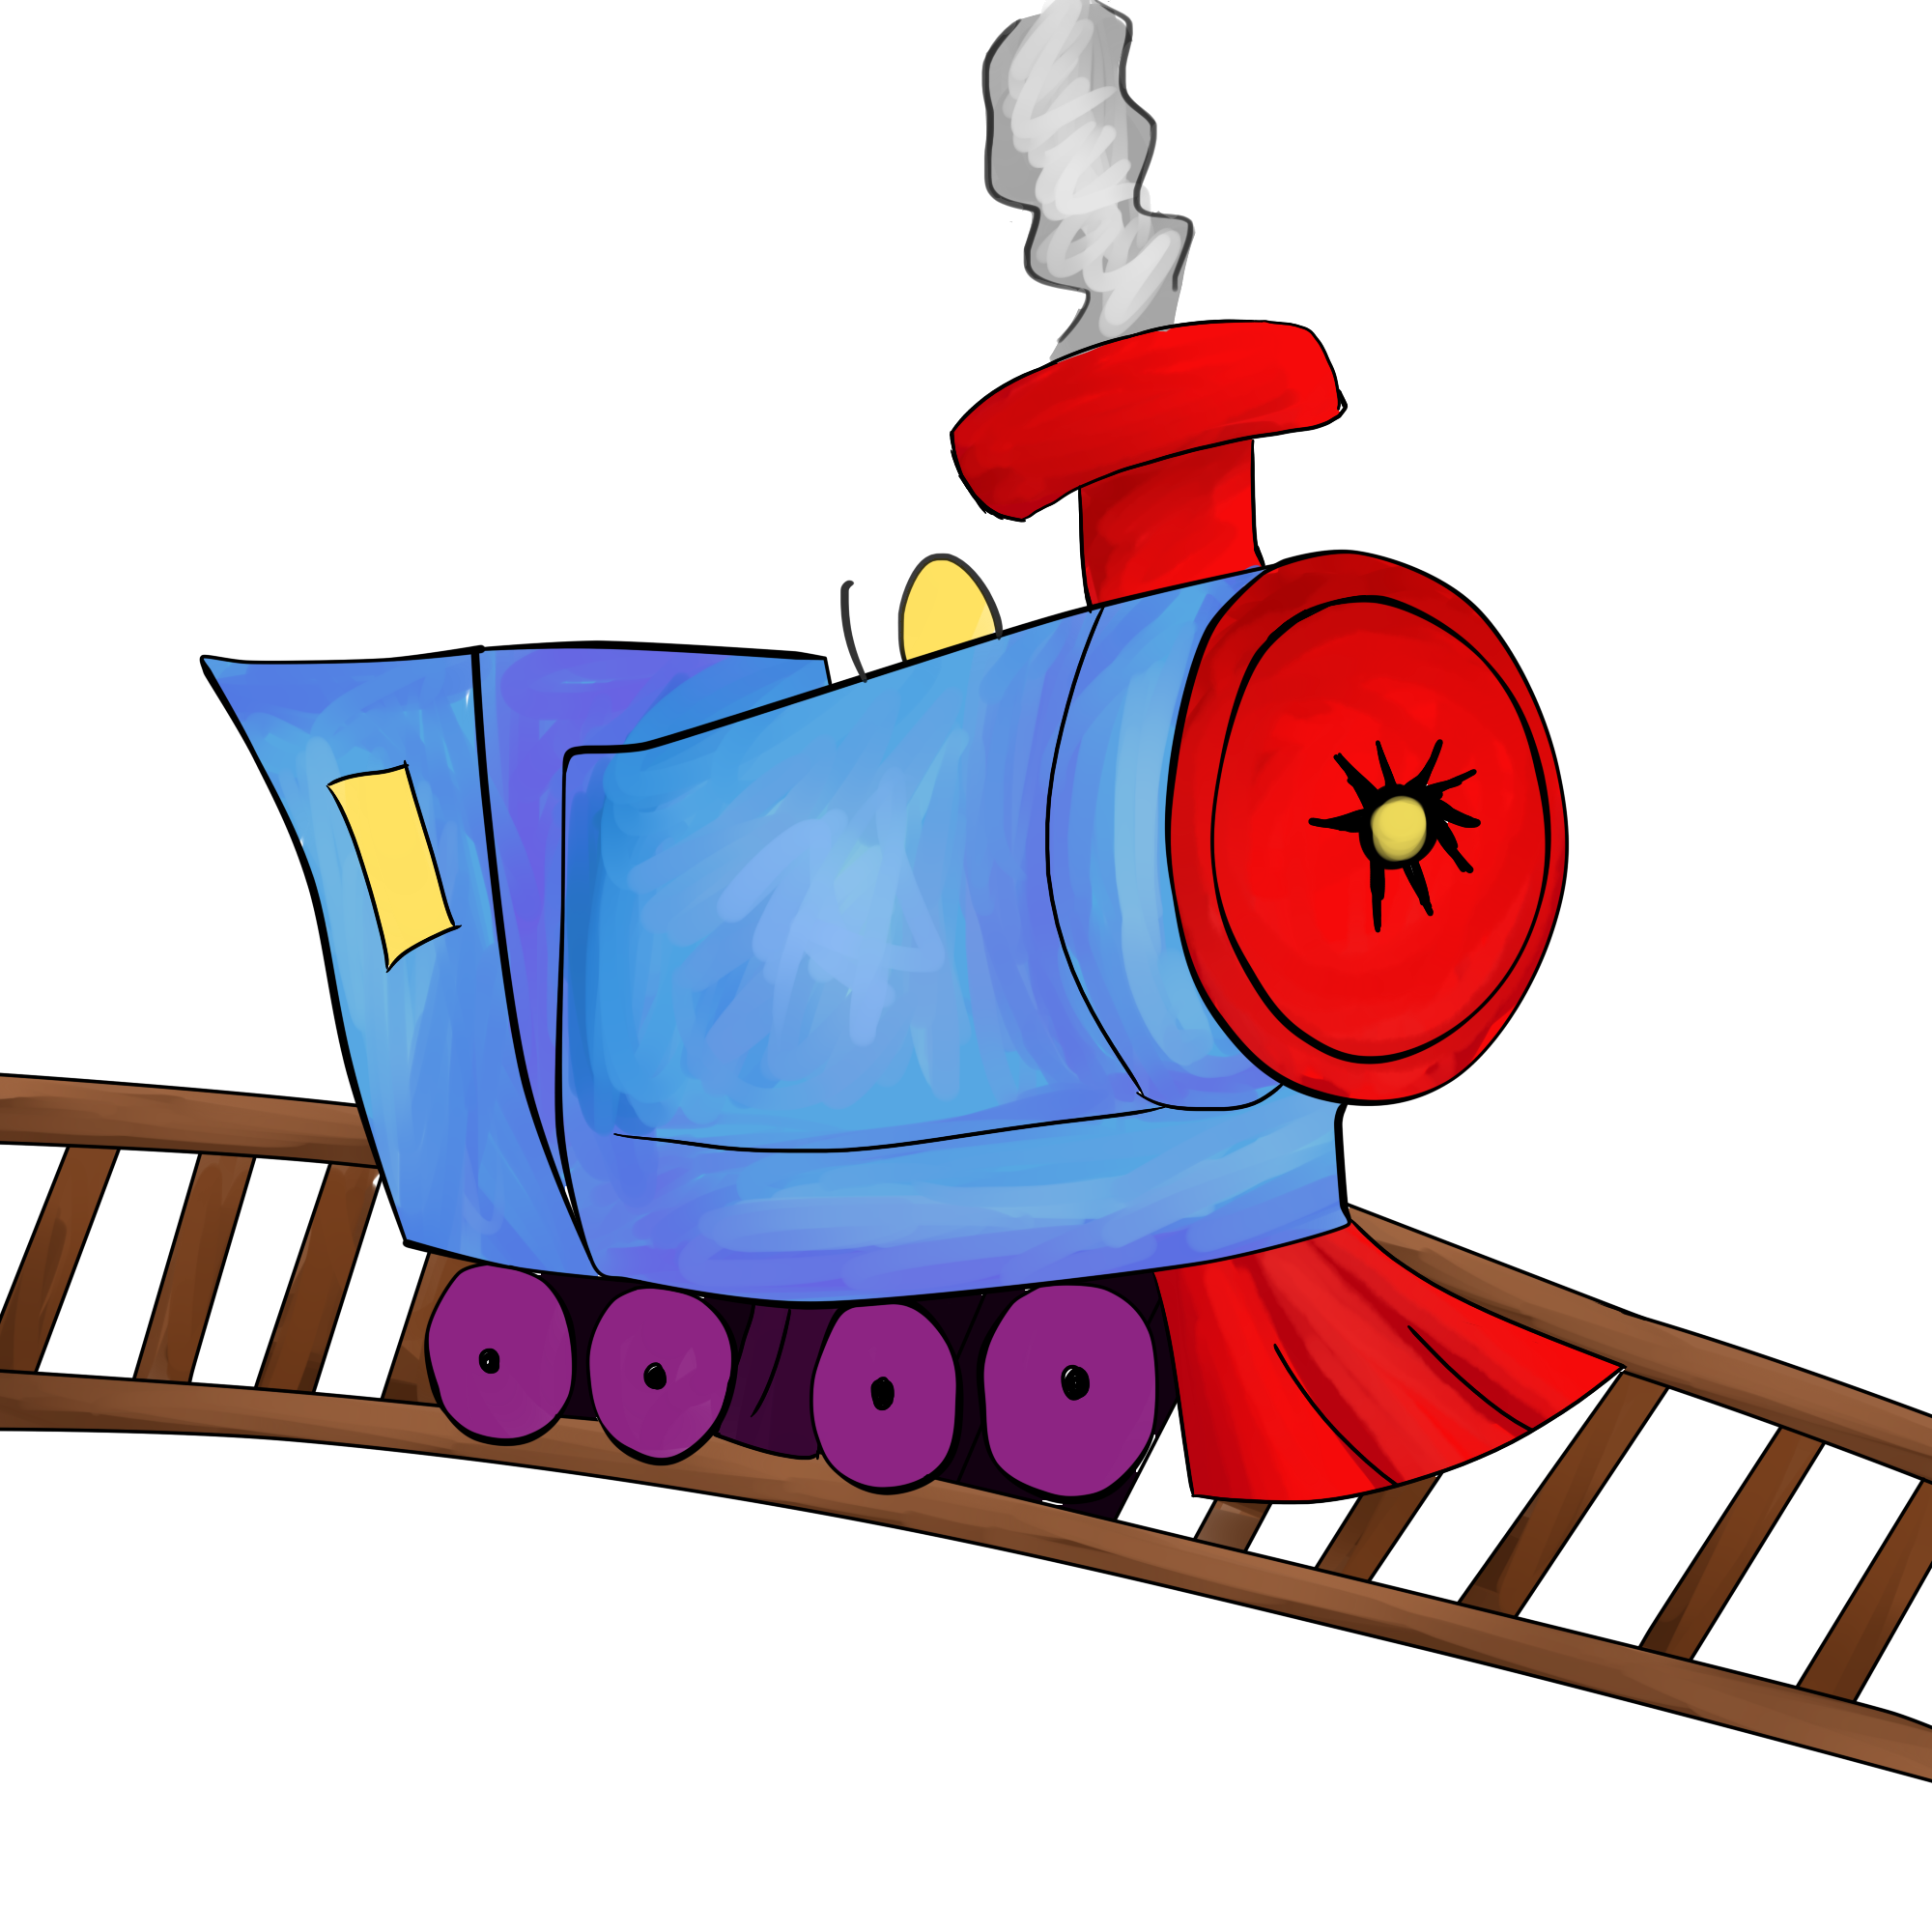 Toy Train Tracks Clipart Childrens Toy Wallpaper Toy Train Train Cartoon Childrens Toy